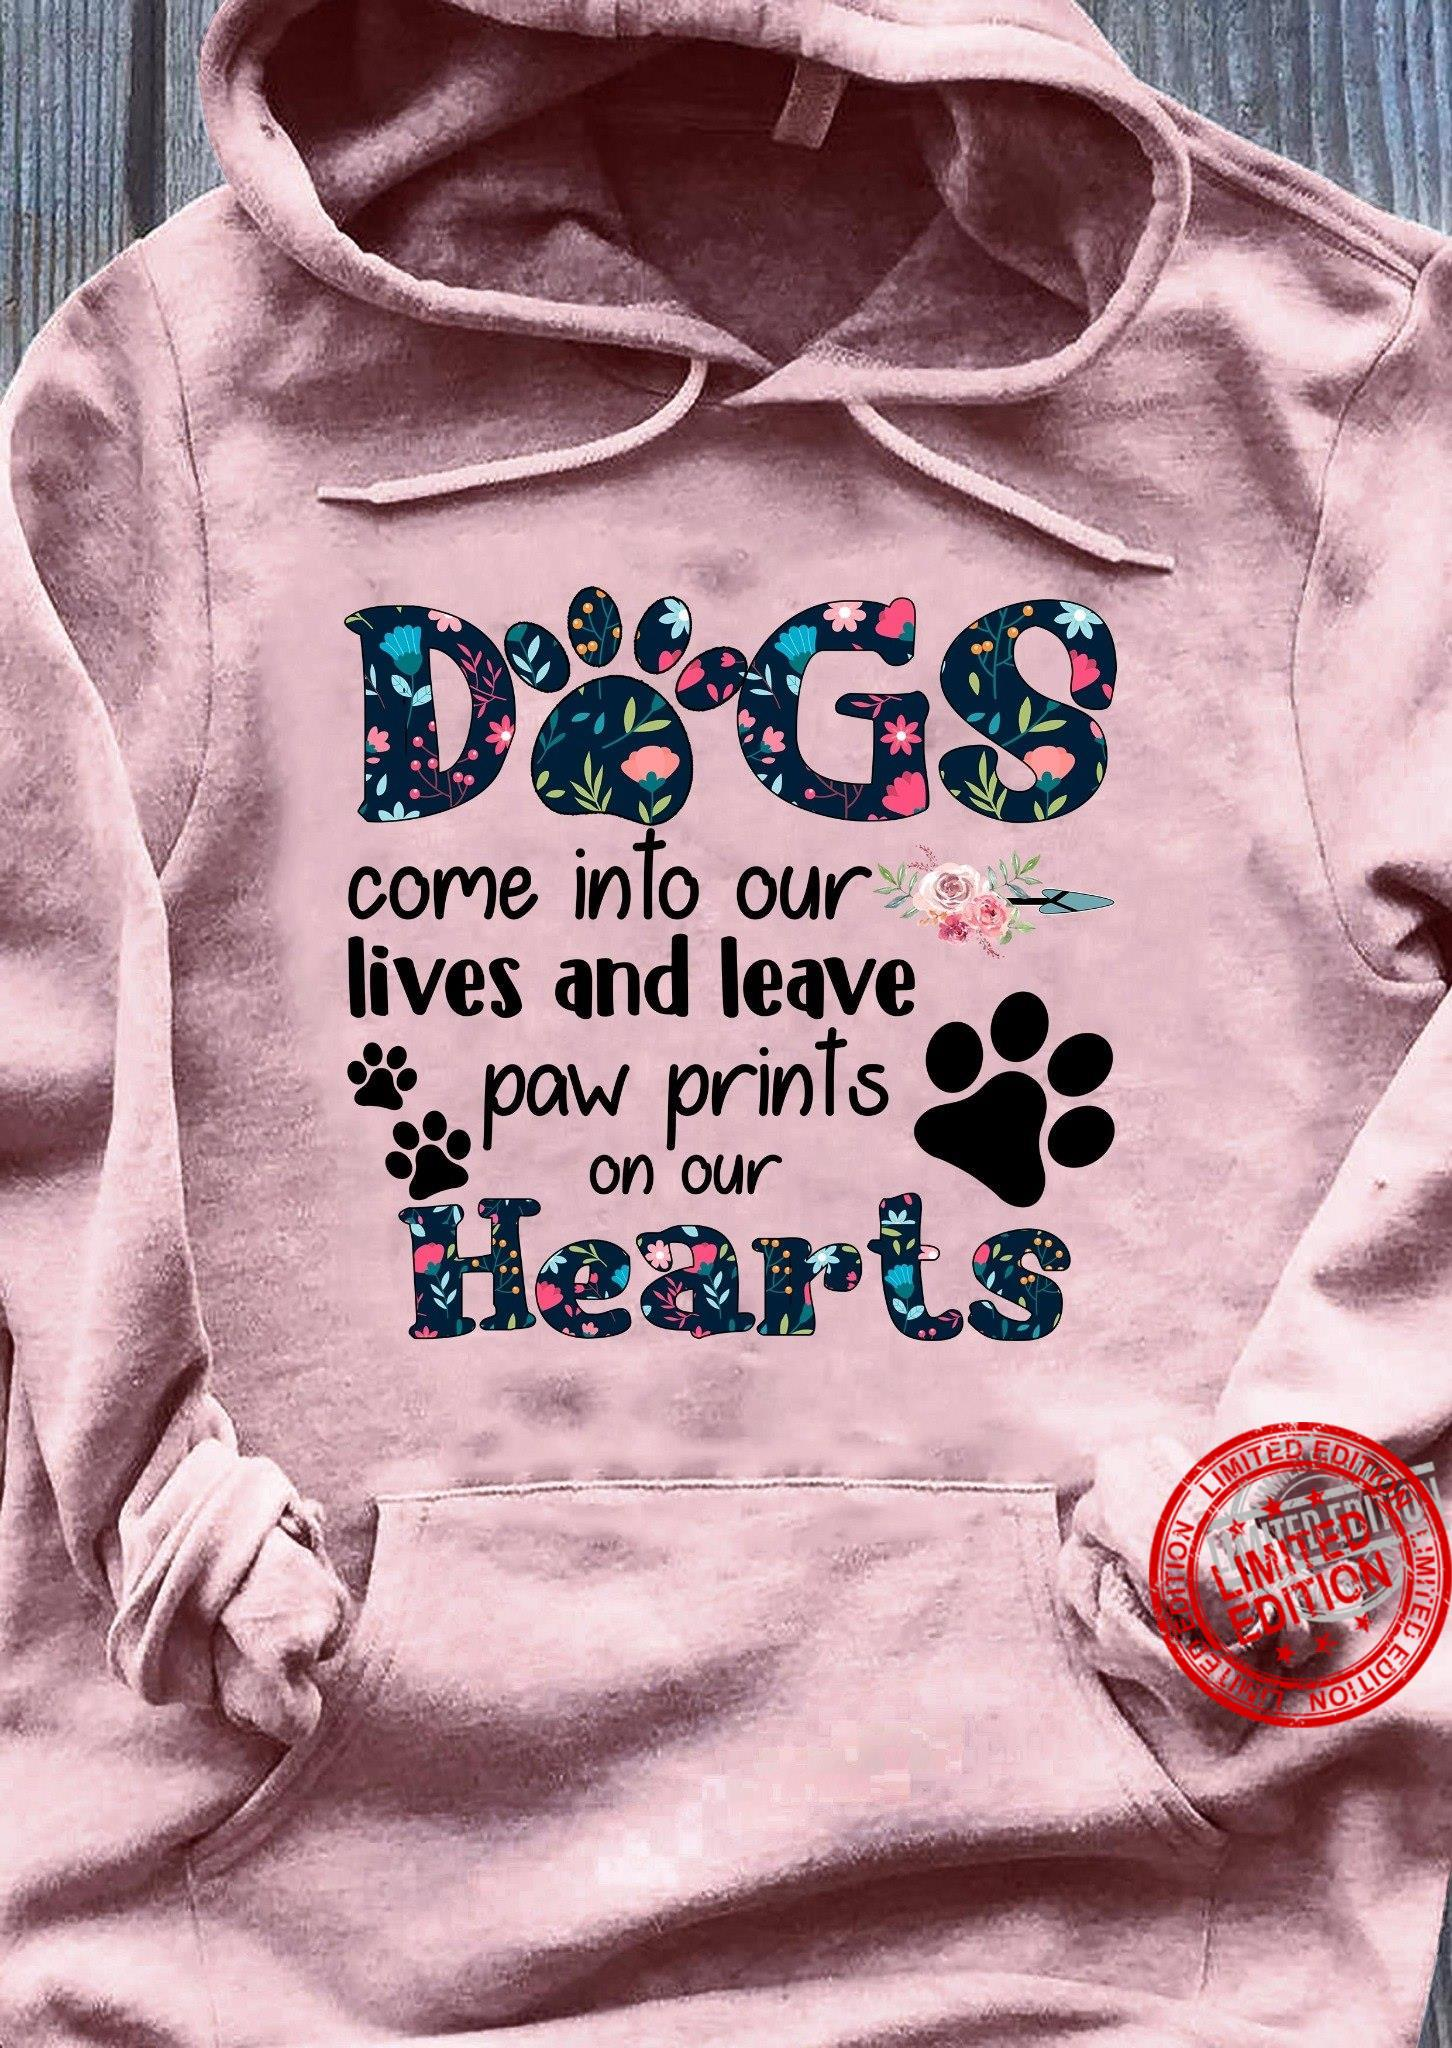 Dogs Come Into Our Lives And Leave Paw Prints On Our Shirt